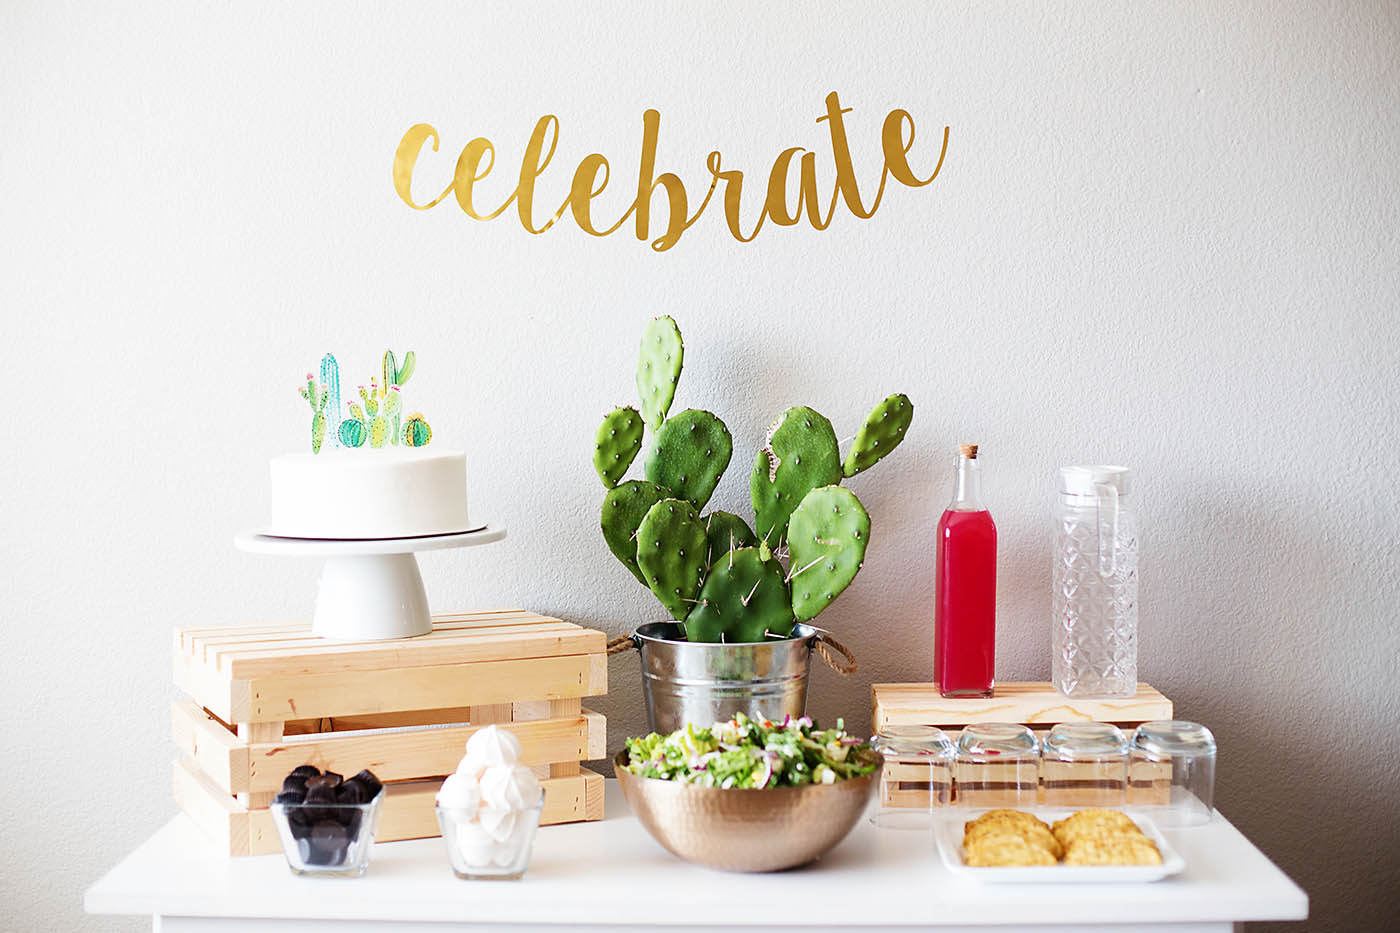 Epic Simple Cactus Themed Baby Shower - All For The Memories intended for Simple Baby Shower